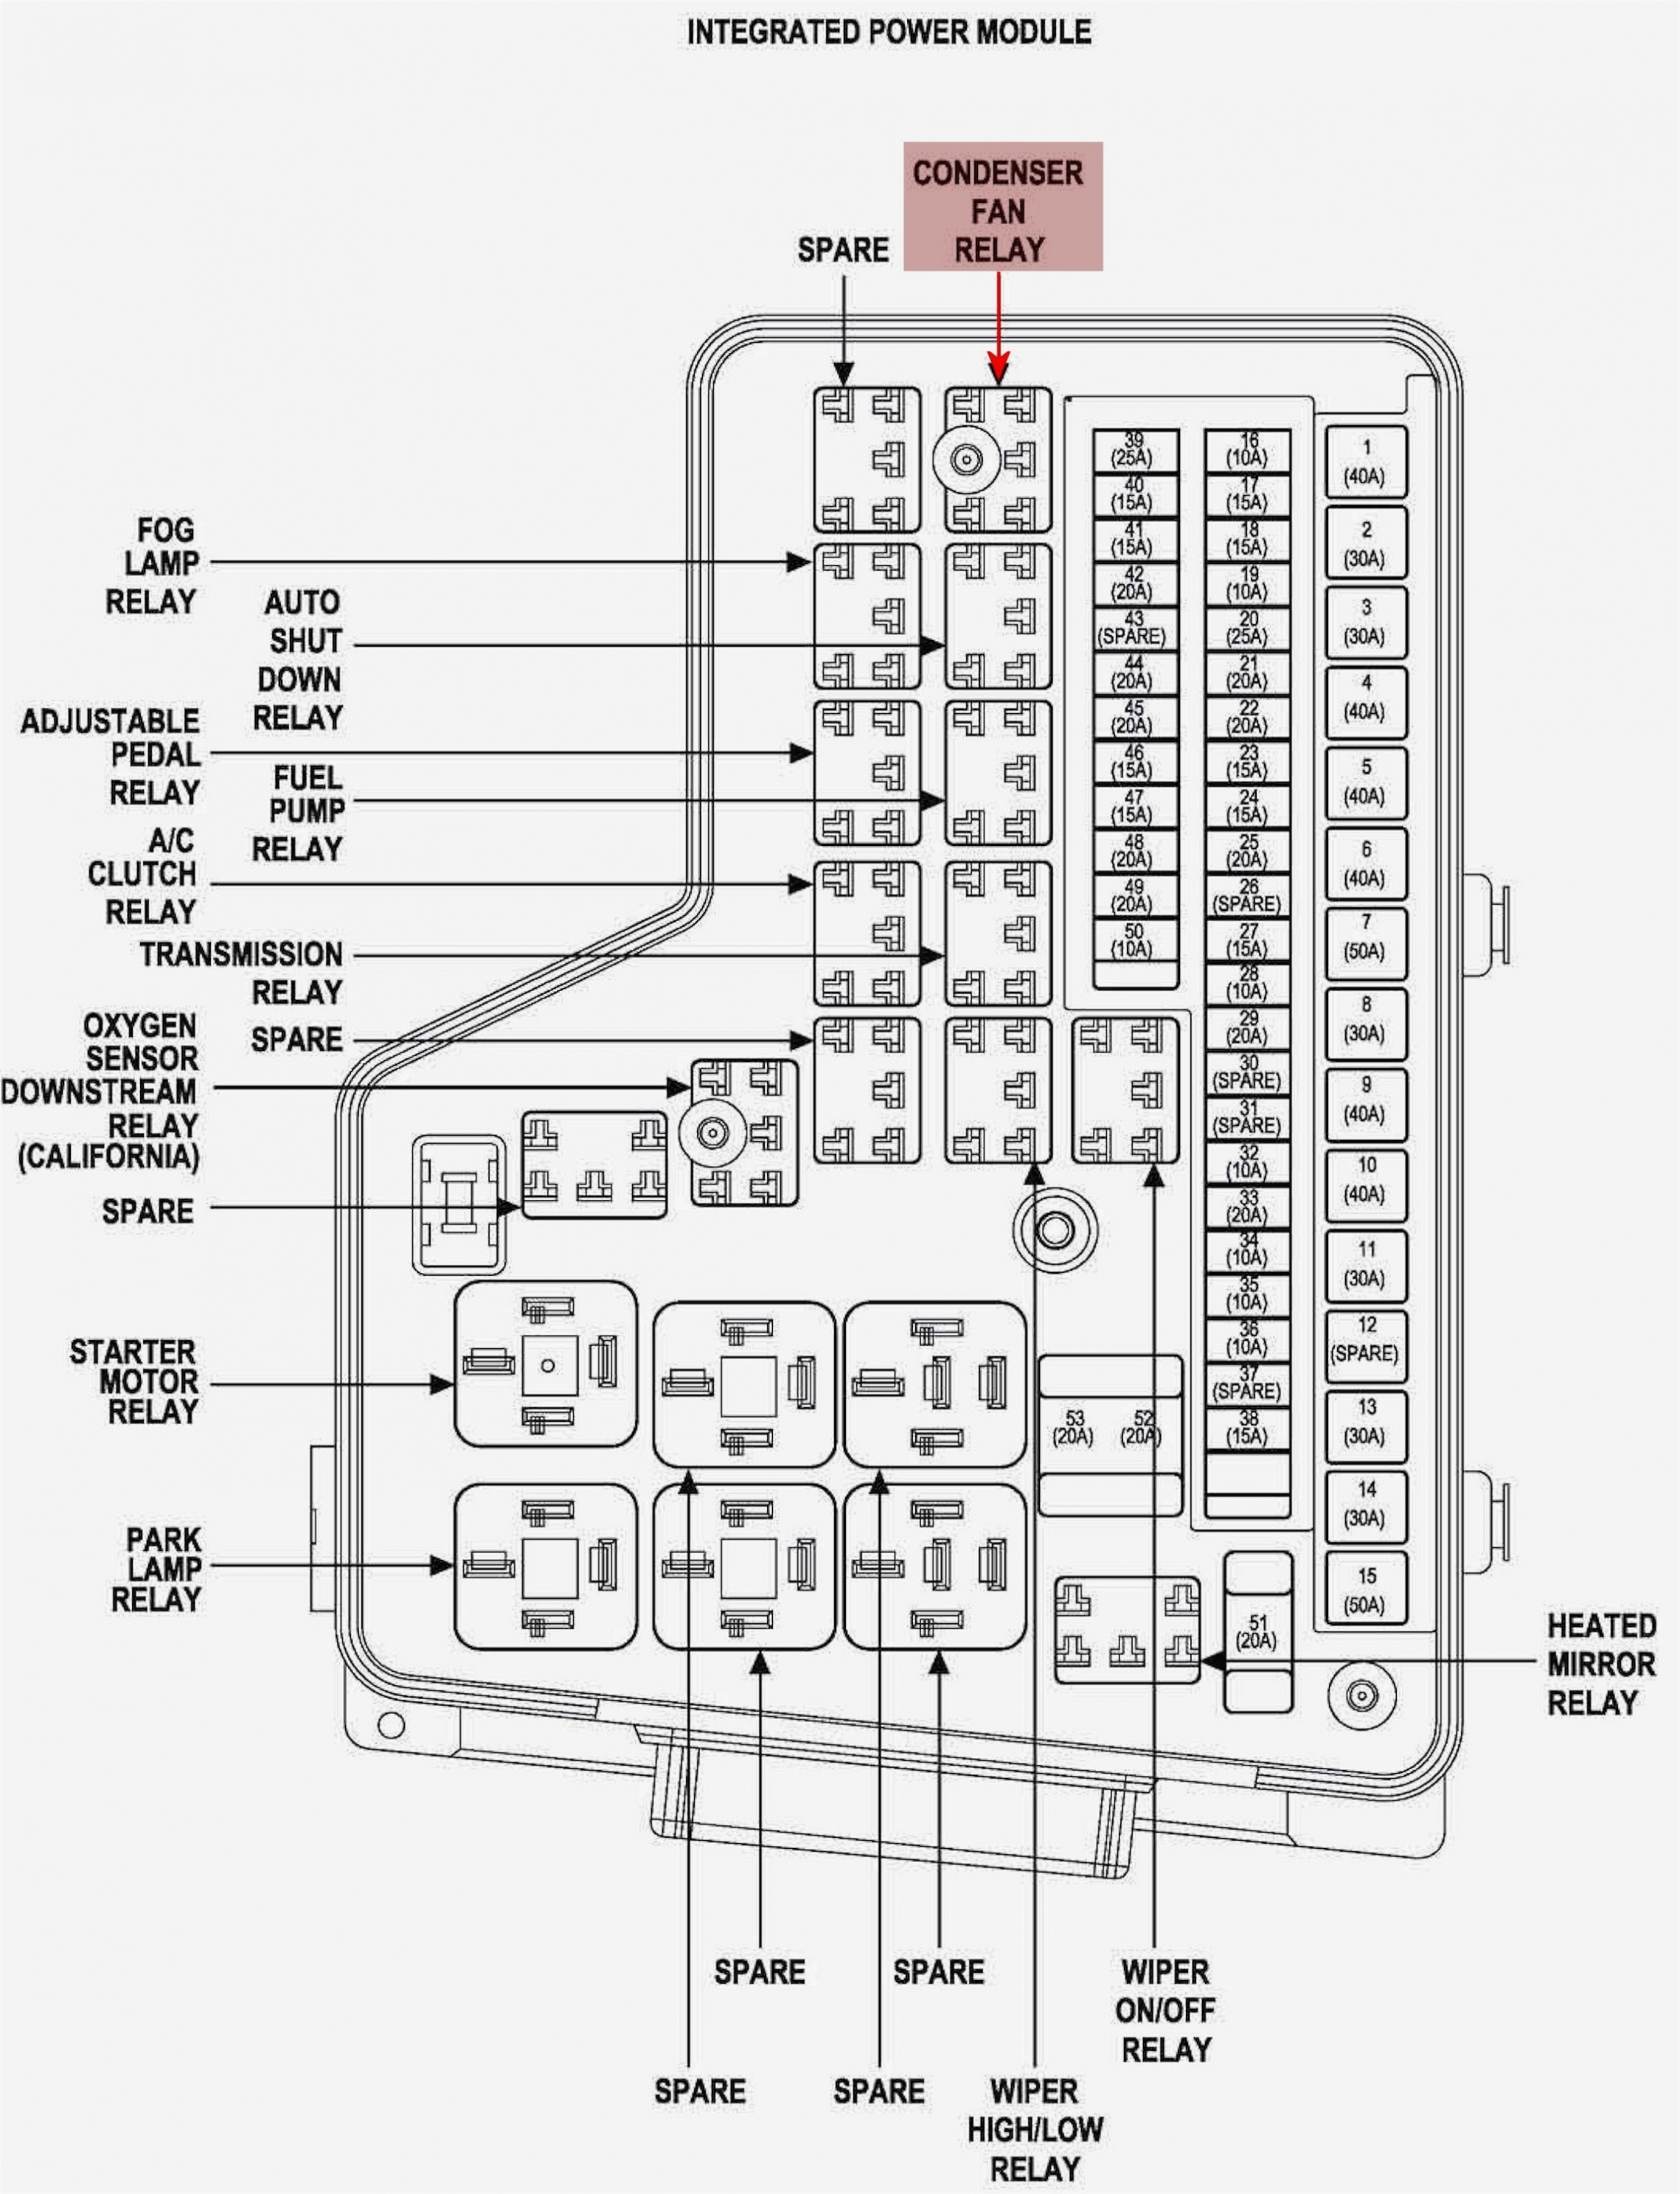 2002 dodge ram 1500 fuse diagram wiring diagrams site 2002 dodge ram 1500 fuse diagram